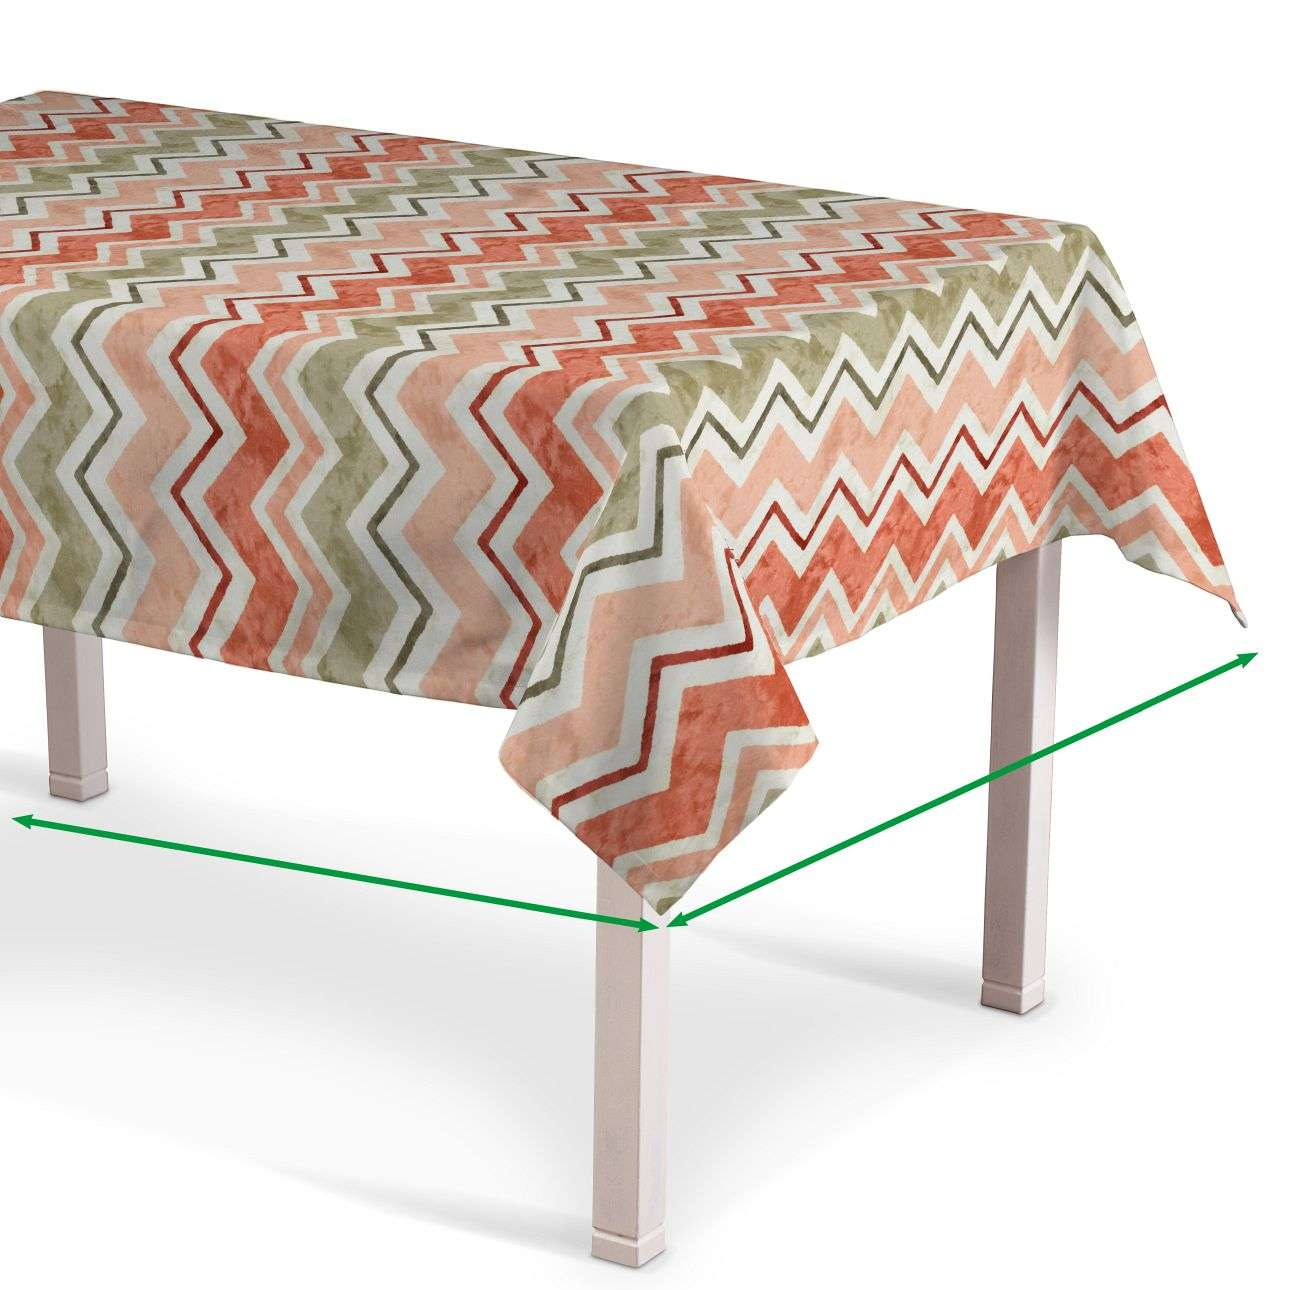 Rectangular tablecloth in collection Acapulco, fabric: 141-40